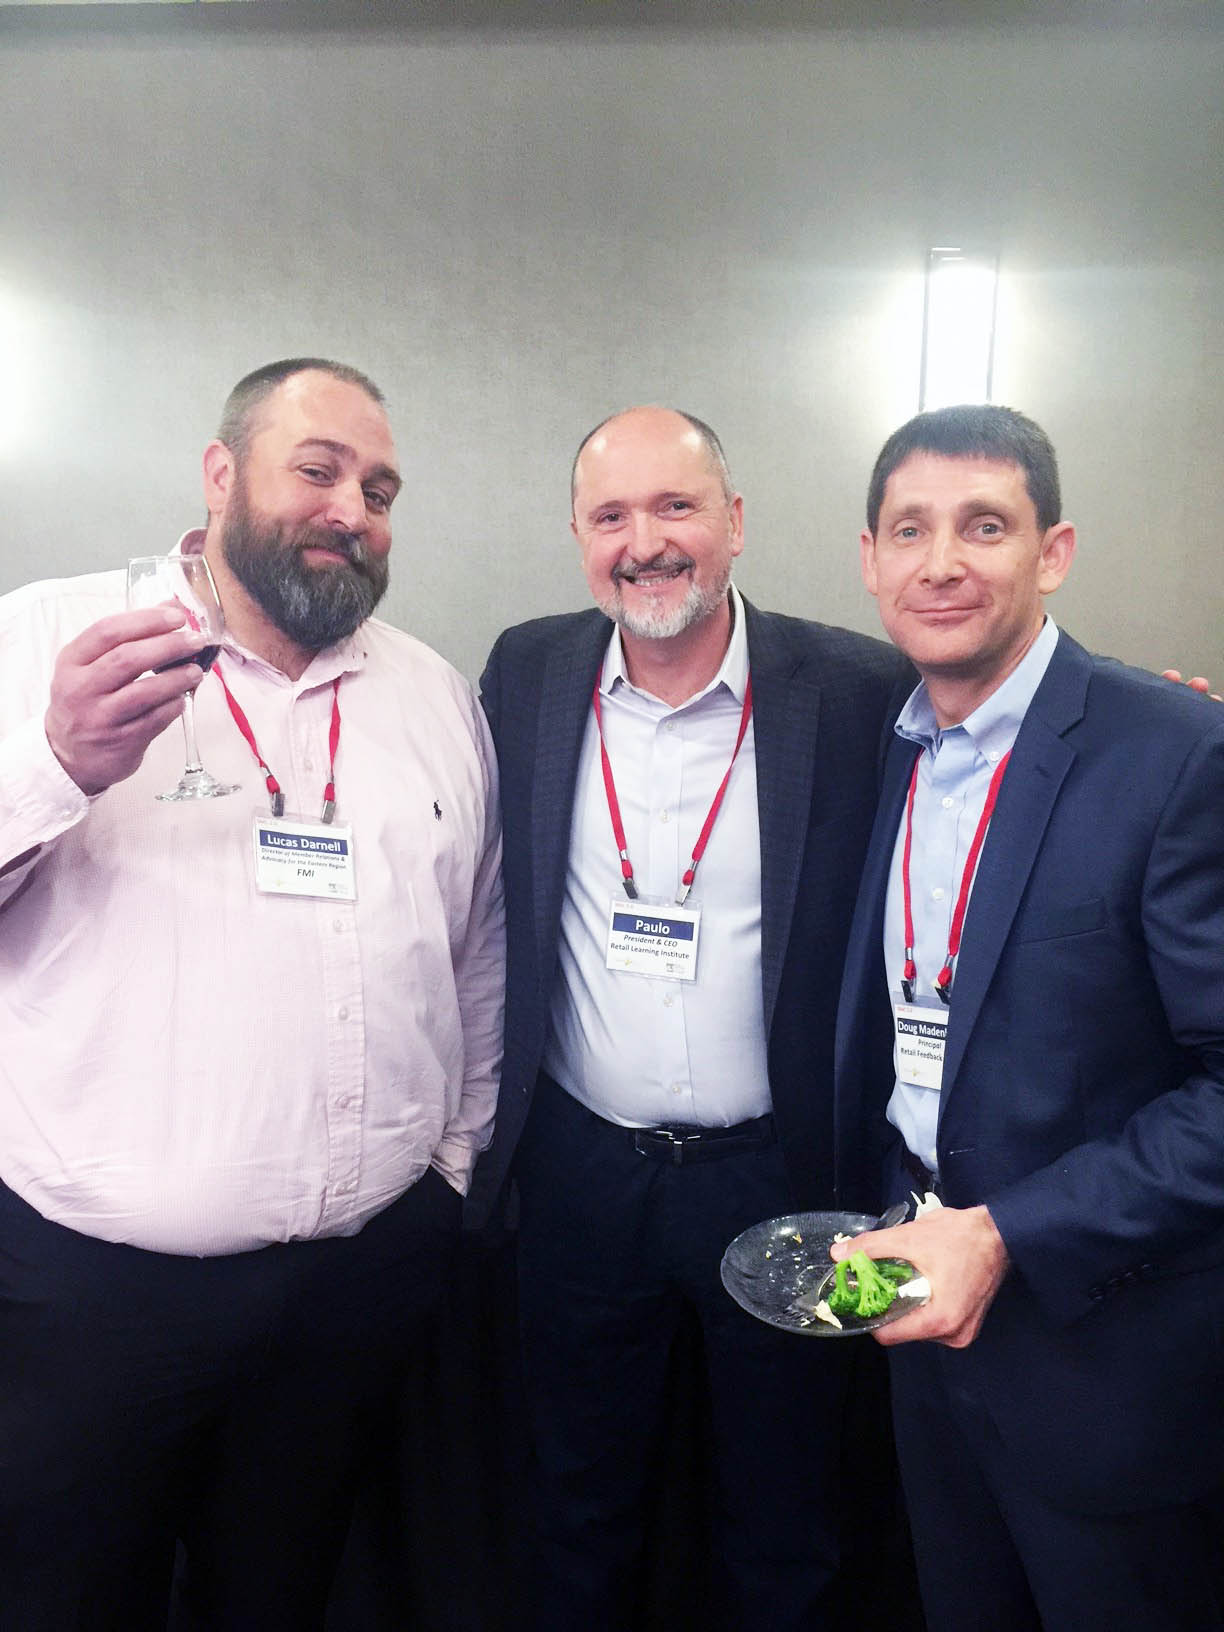 Lucas Darnell, Paulo Goelzer and Doug Madenberg smiling while holding beverages and snacks